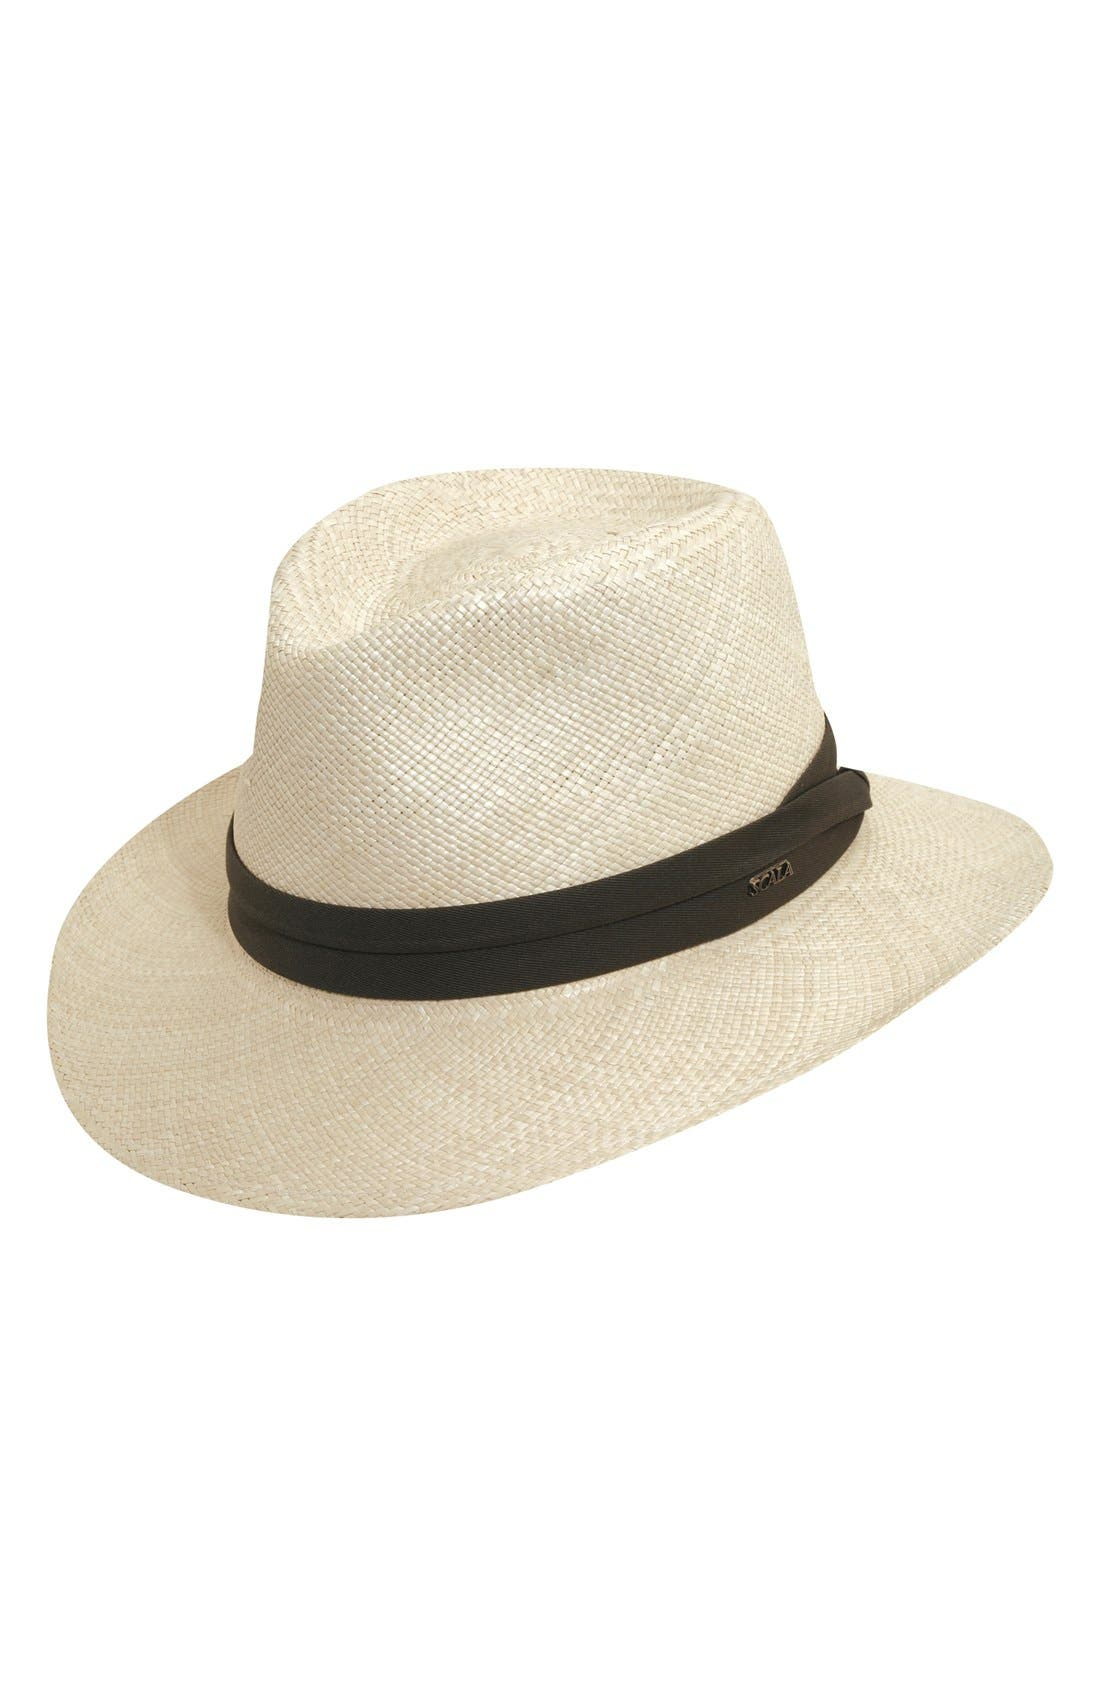 Straw Outback Hat,                             Main thumbnail 1, color,                             NATURAL